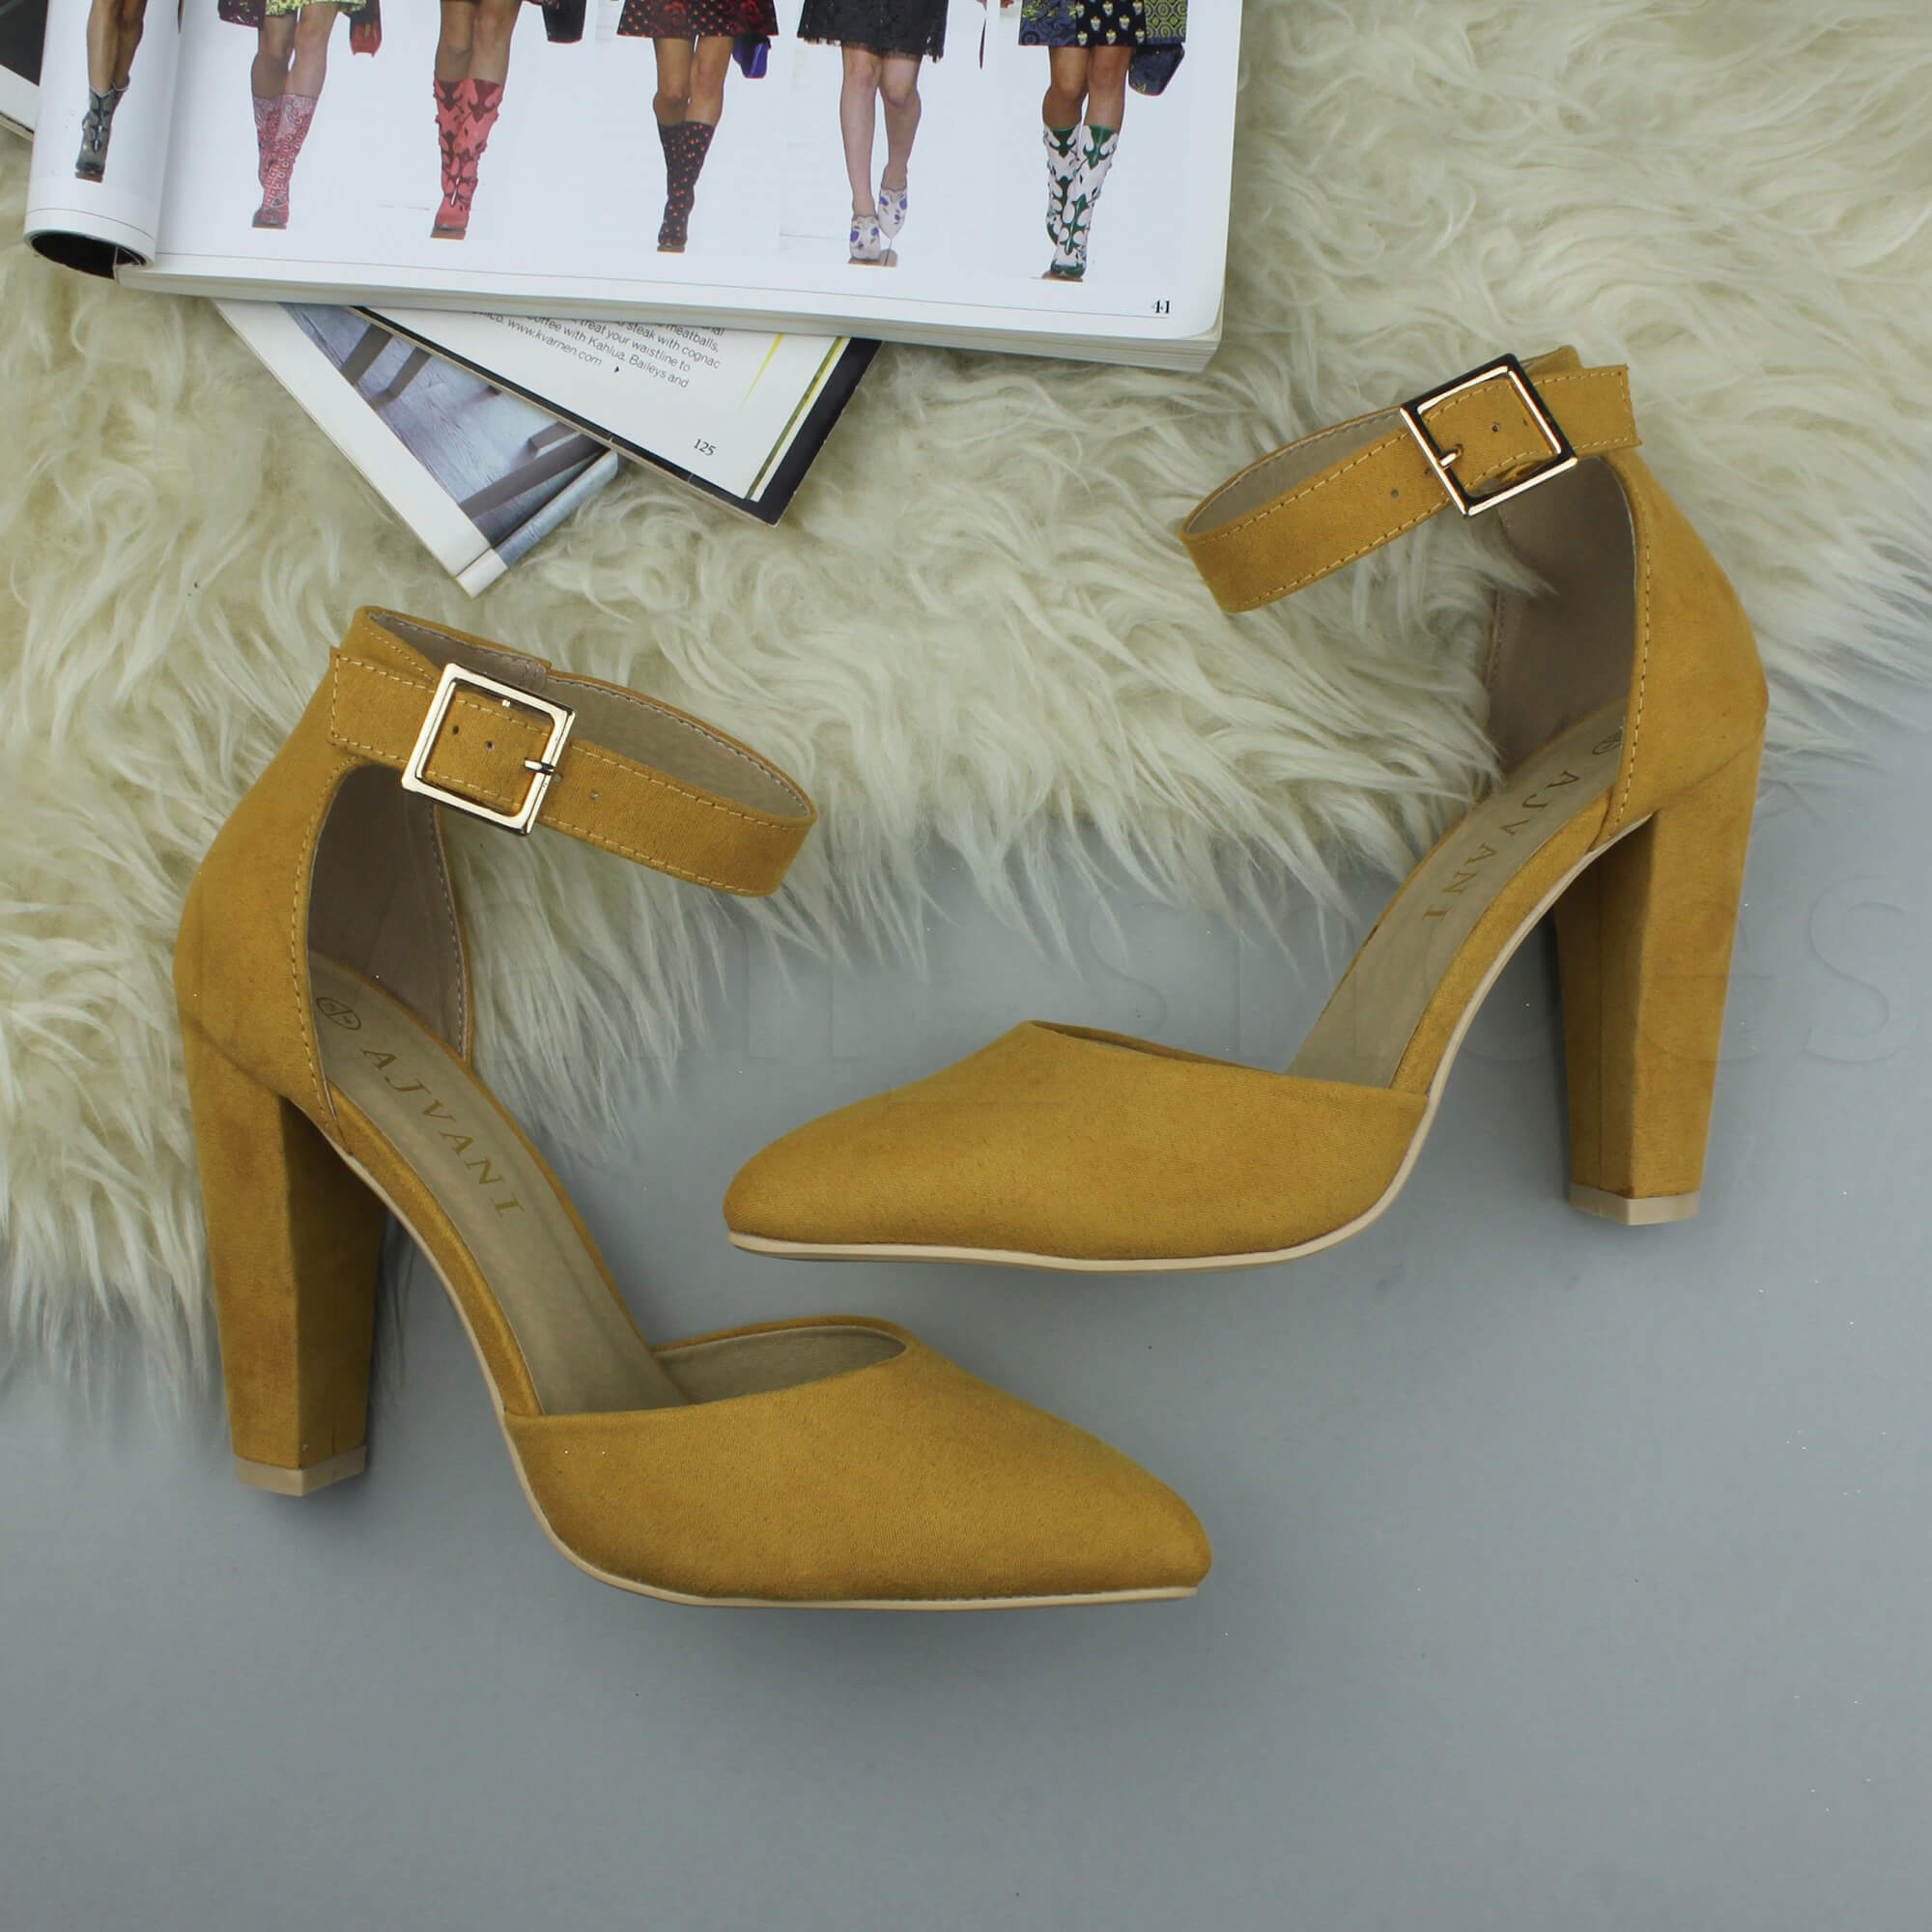 WOMENS-LADIES-HIGH-BLOCK-HEEL-ANKLE-STRAP-BUCKLE-POINTED-COURT-SHOES-SIZE thumbnail 89